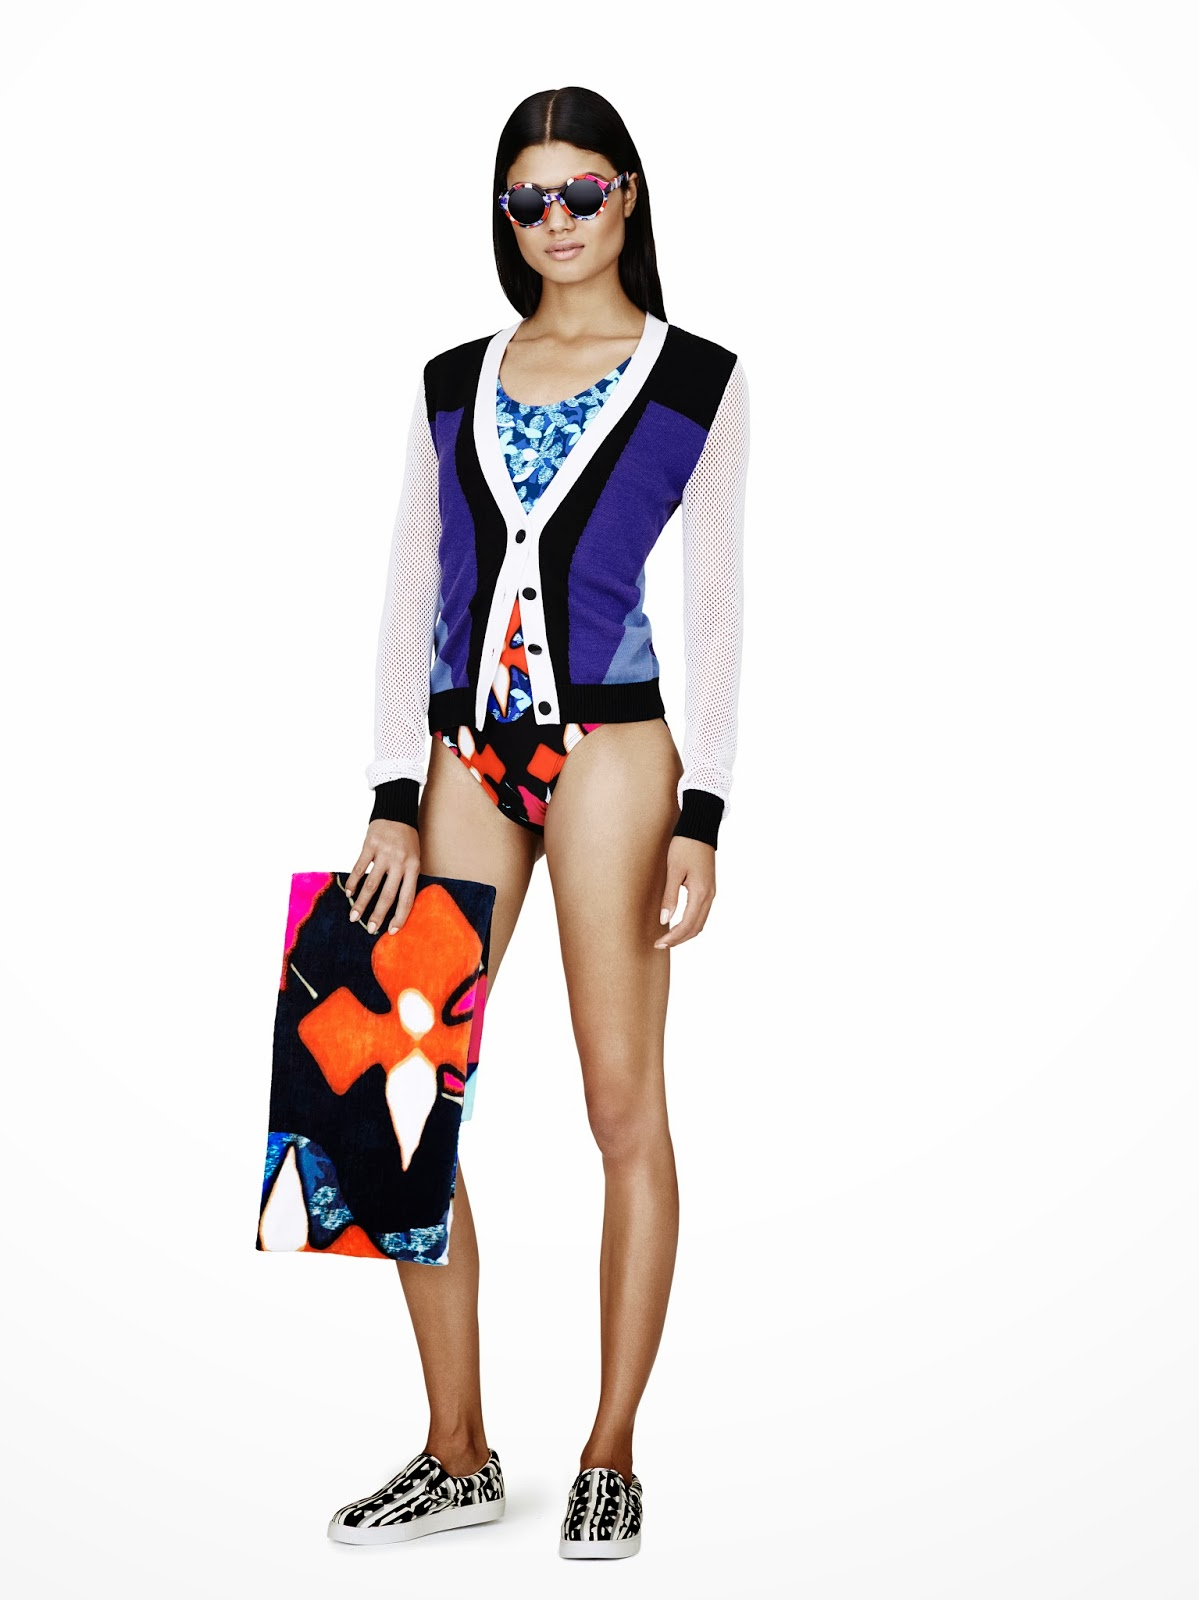 Peter-Pilotto-Target, purple-black, swimwear, bag, Spring-Summer-2014